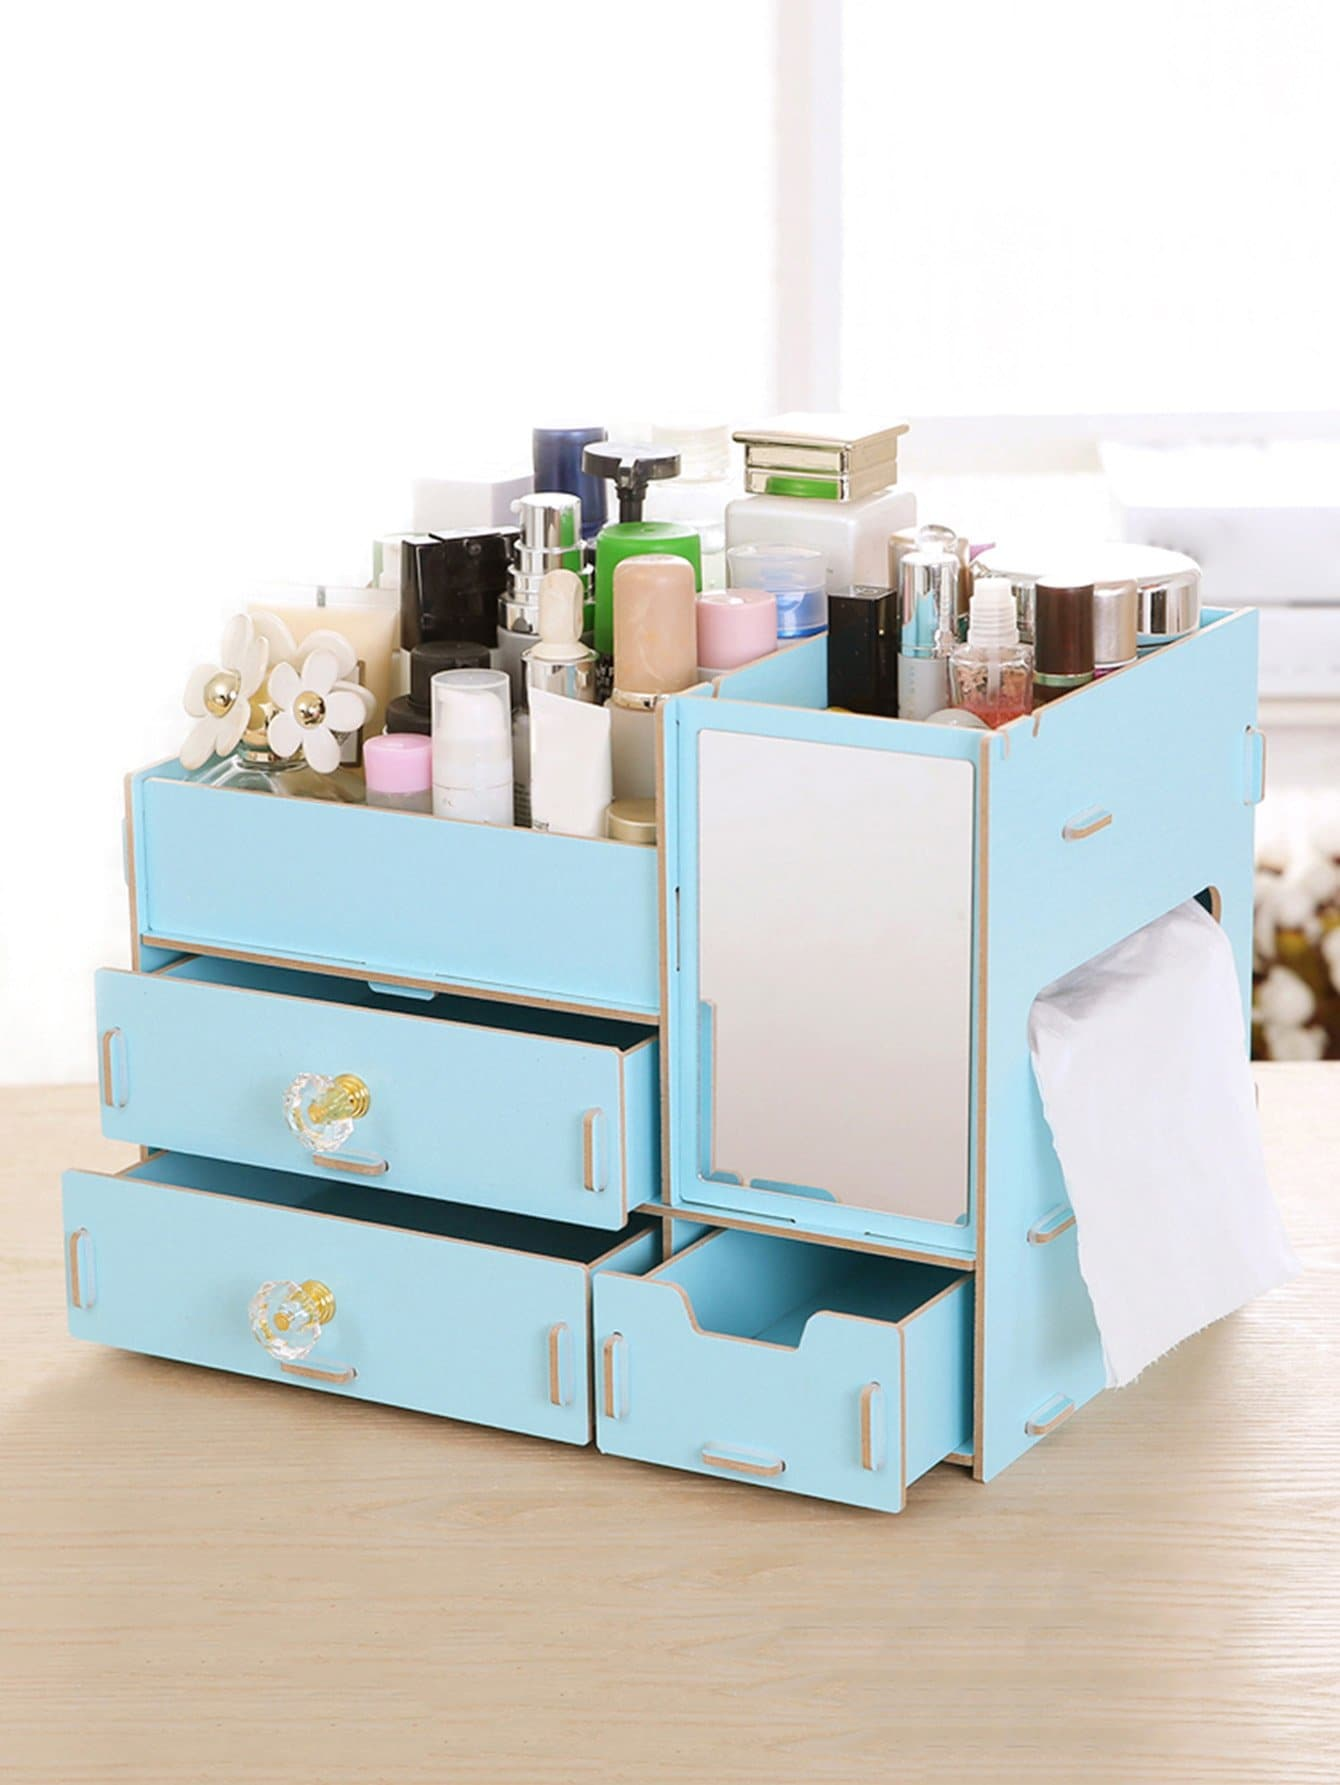 Layered Drawer Desk Organizer With Mirror kitcox01761easaf3274bl value kit safco one drawer hospitality organizer saf3274bl and clorox disinfecting wipes cox01761ea